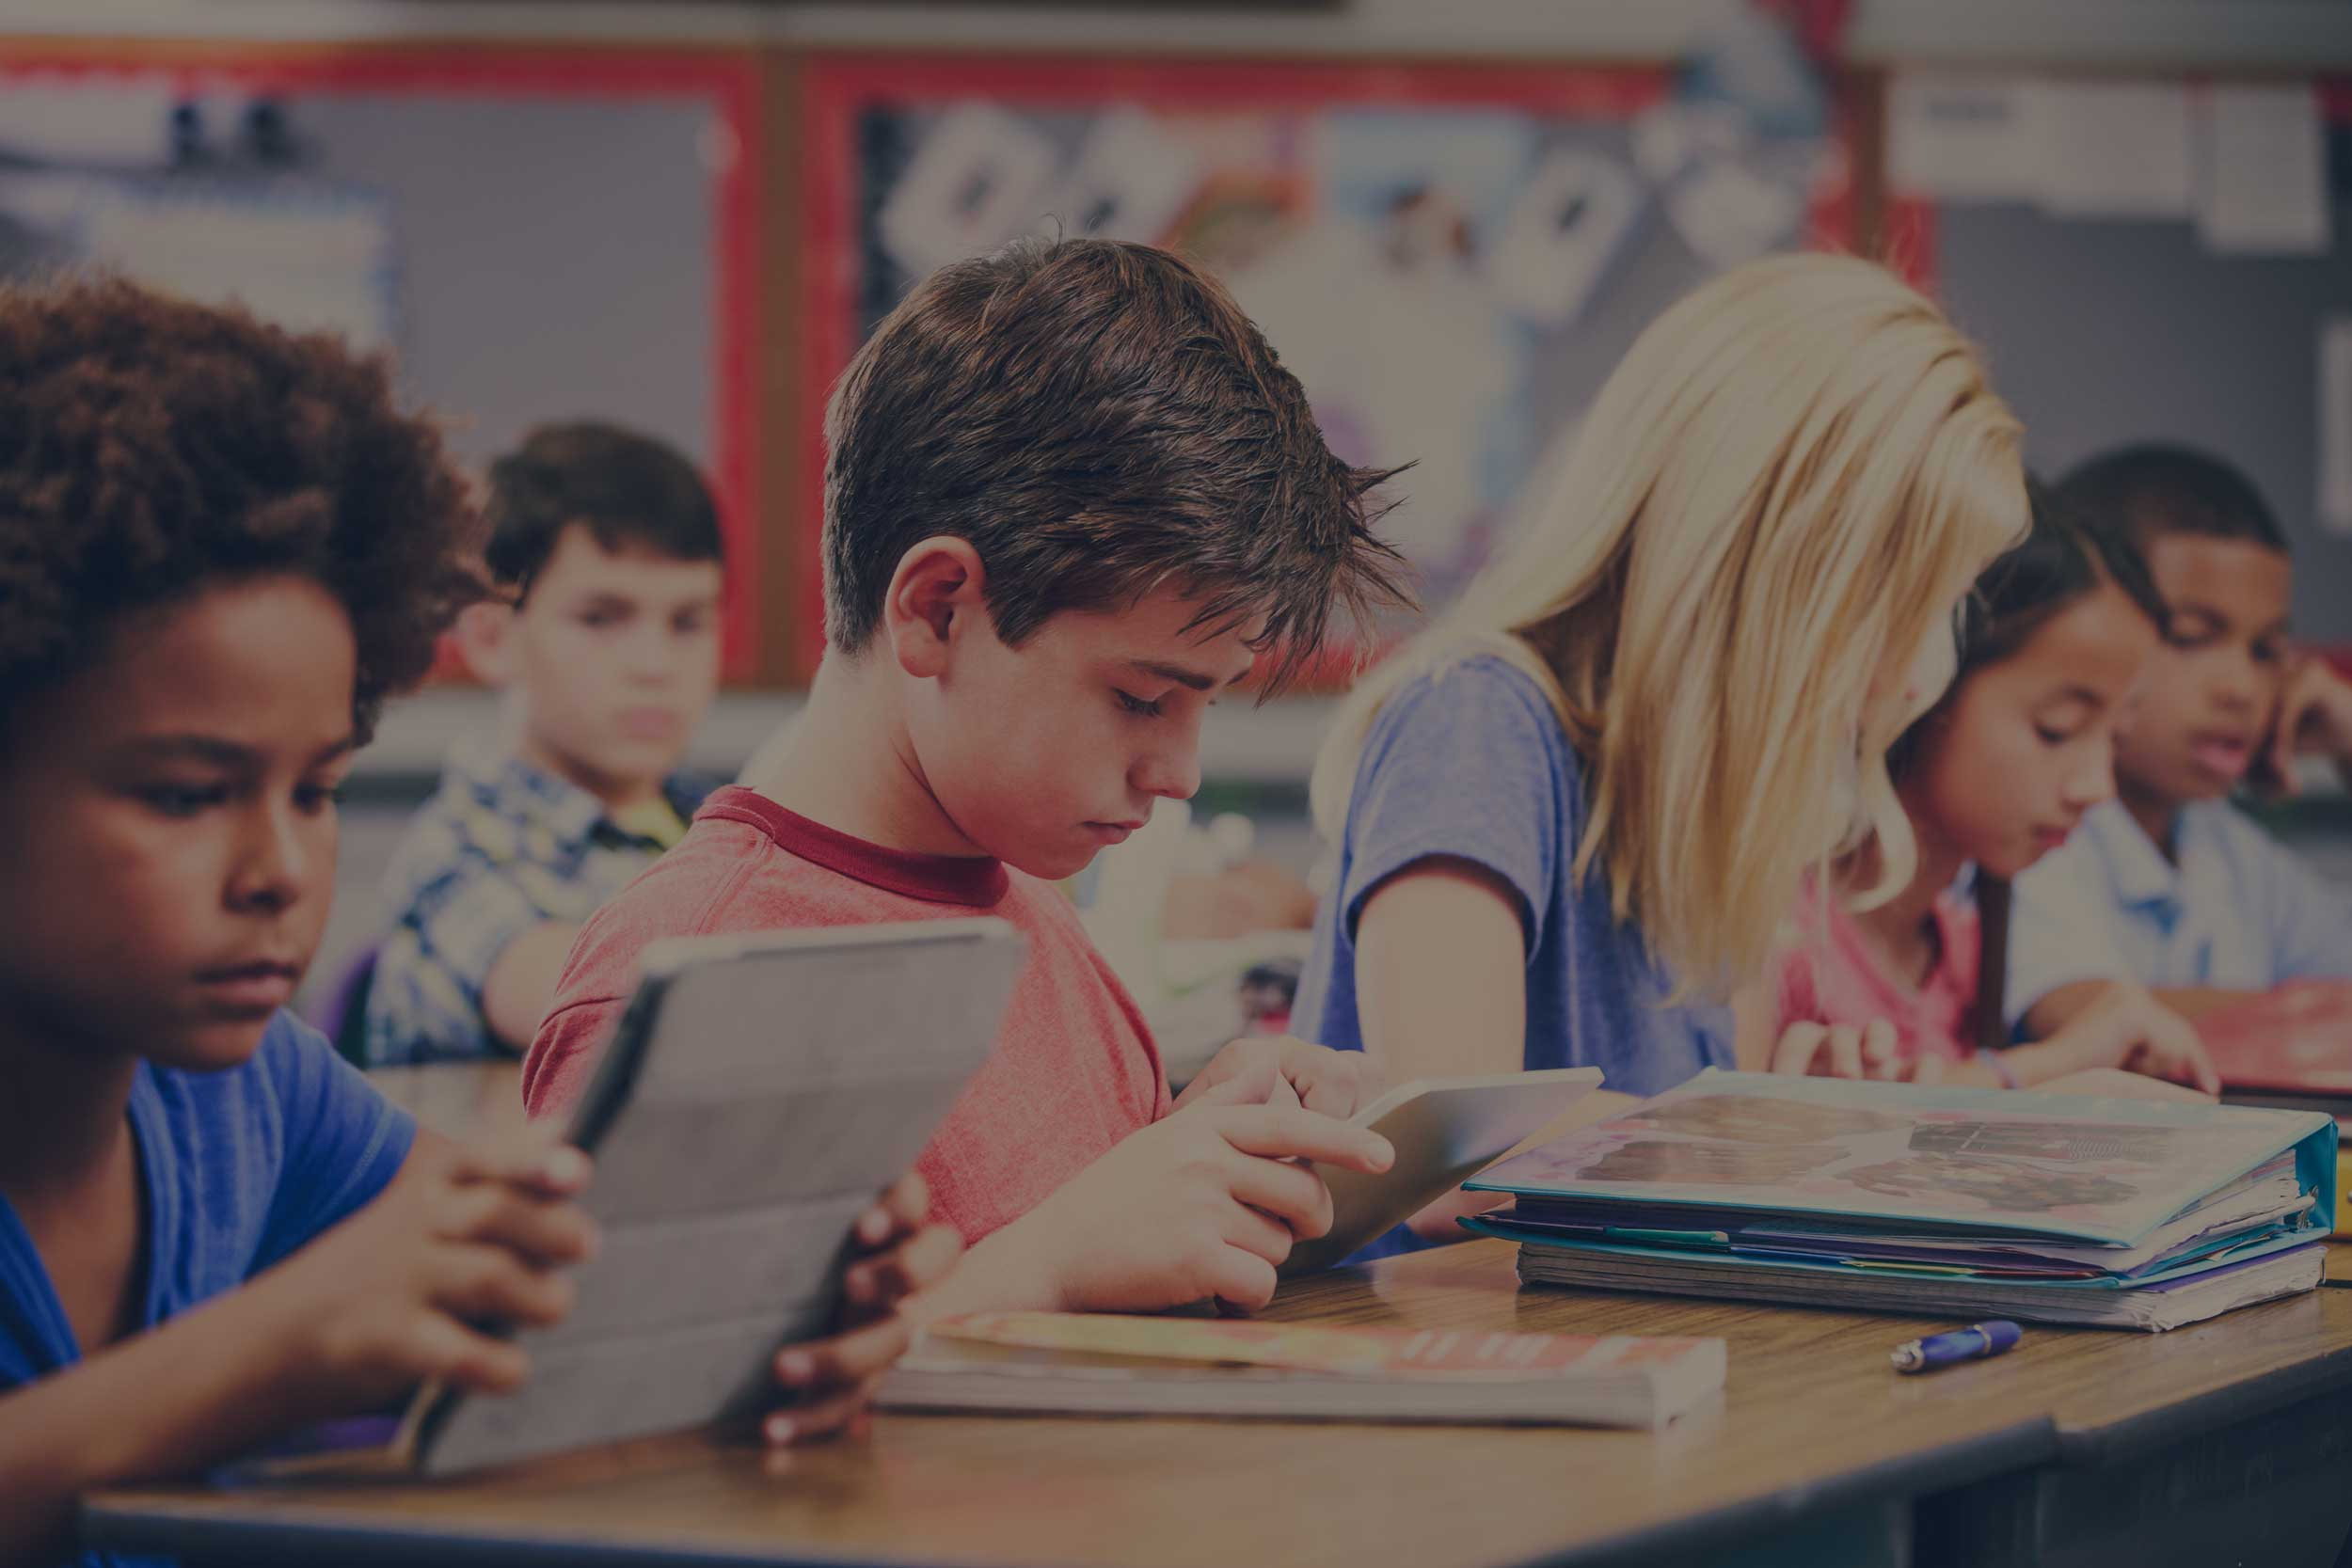 6 Biggest Classroom Technology Trends in 2014